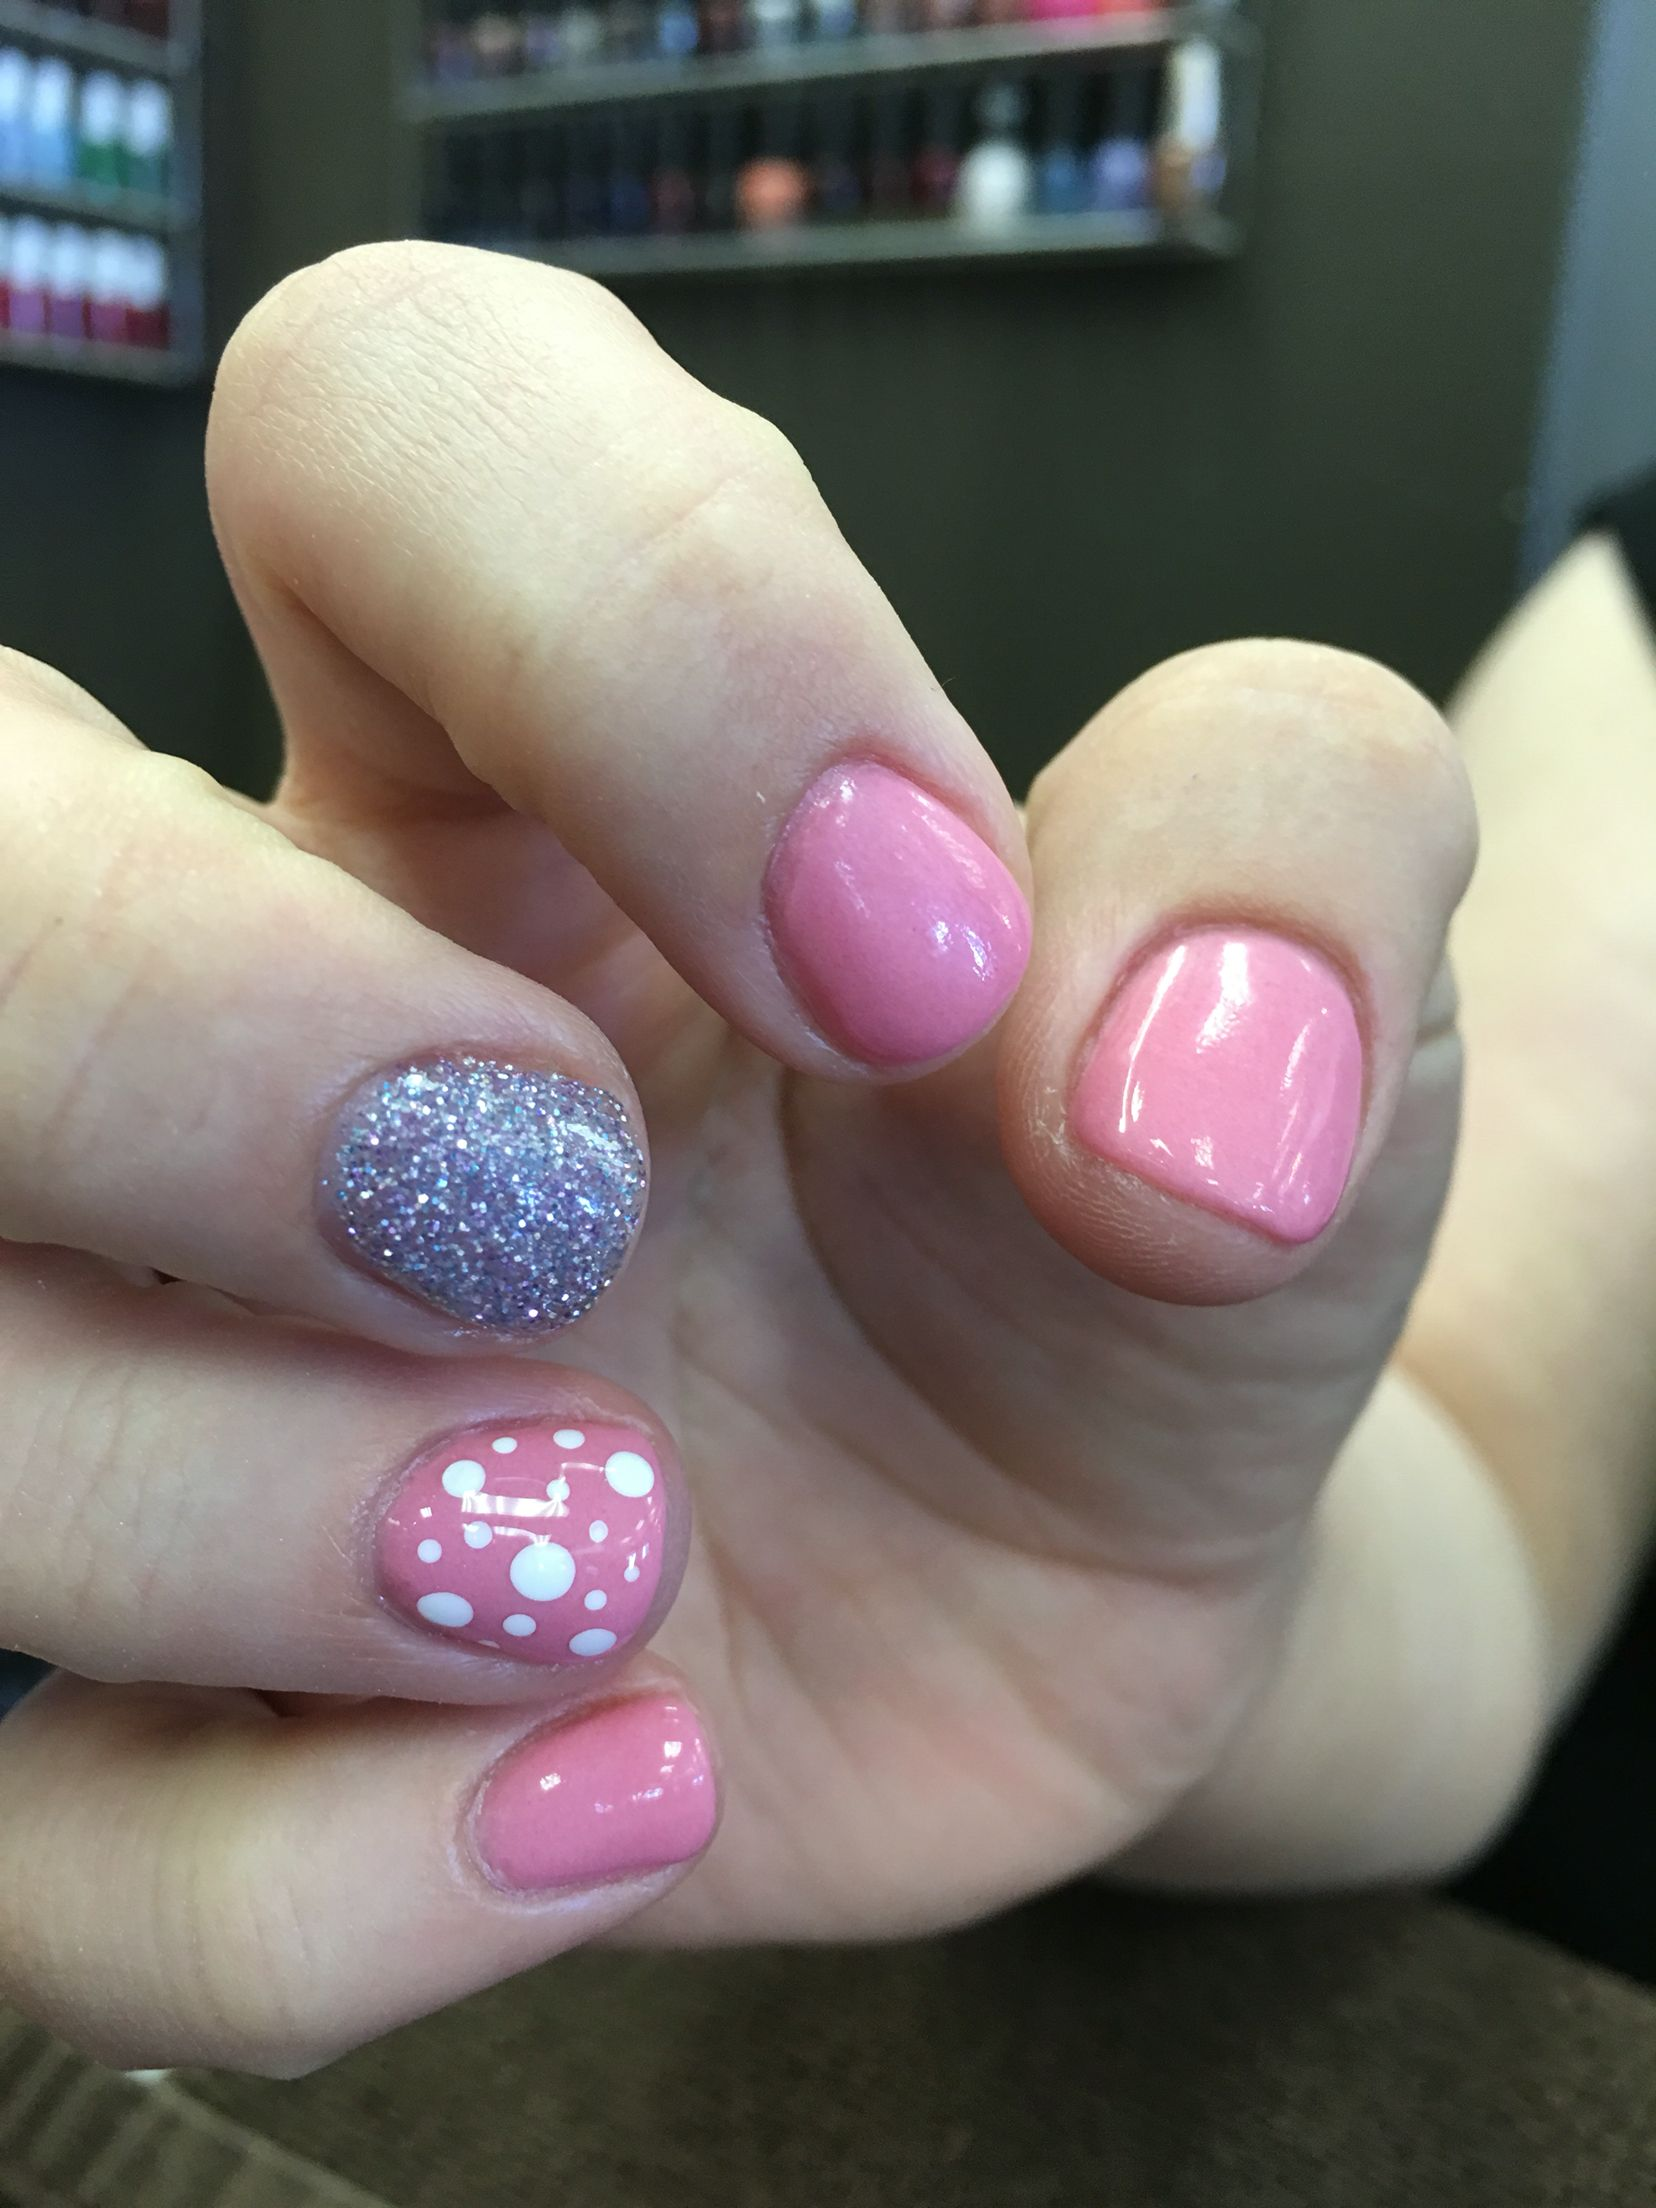 Nexgen dipping powder nails: pink and glitter with designs | More ...